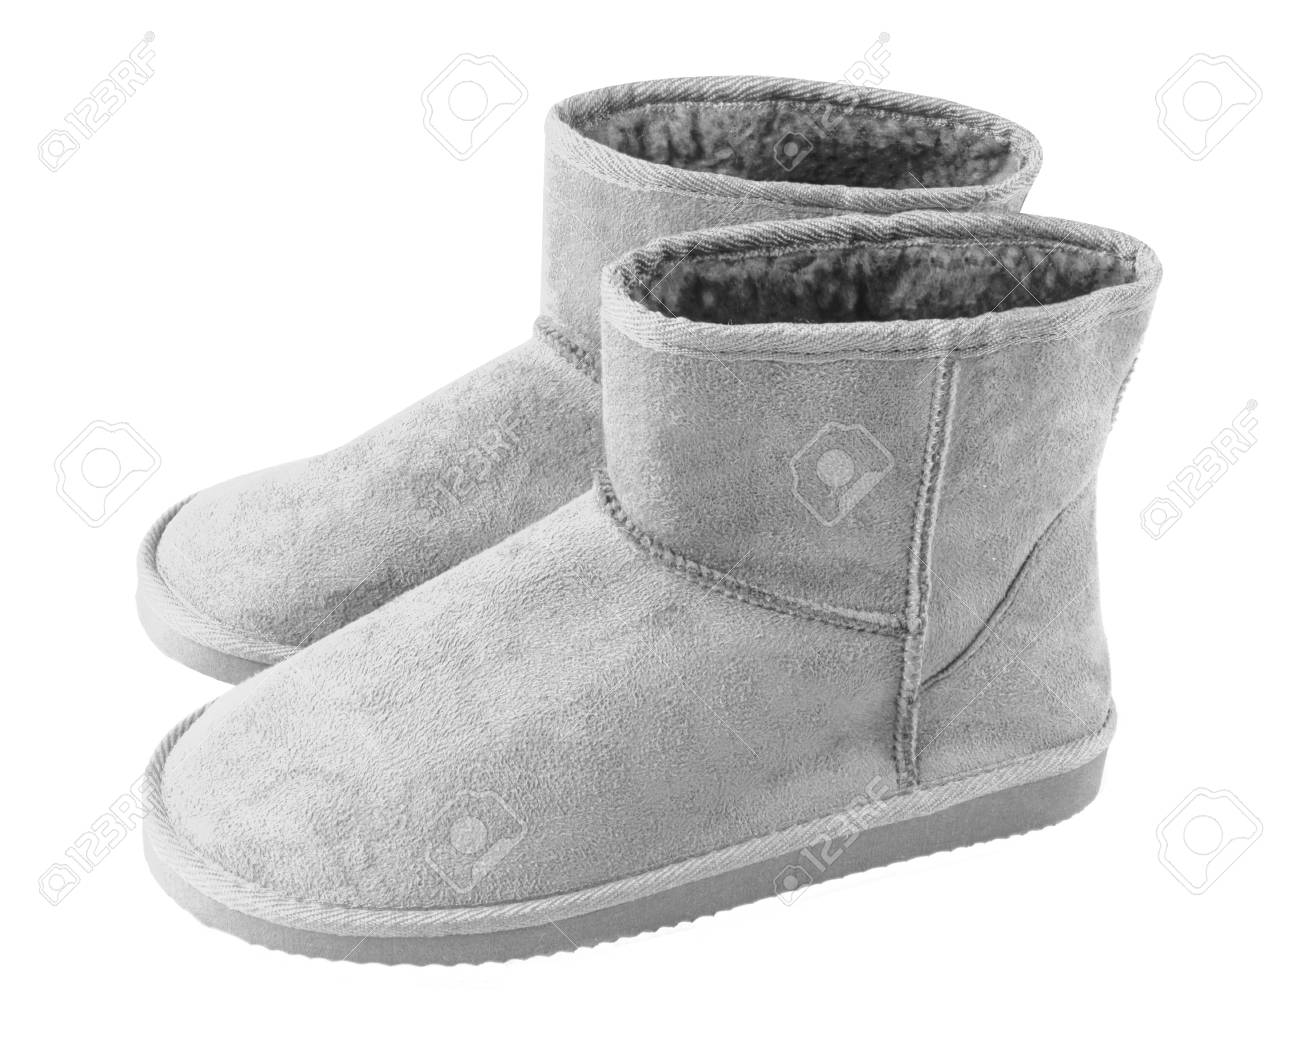 ad64b5dd0f4 Silver gray turquoise pair of short winter ugg boots isolated..